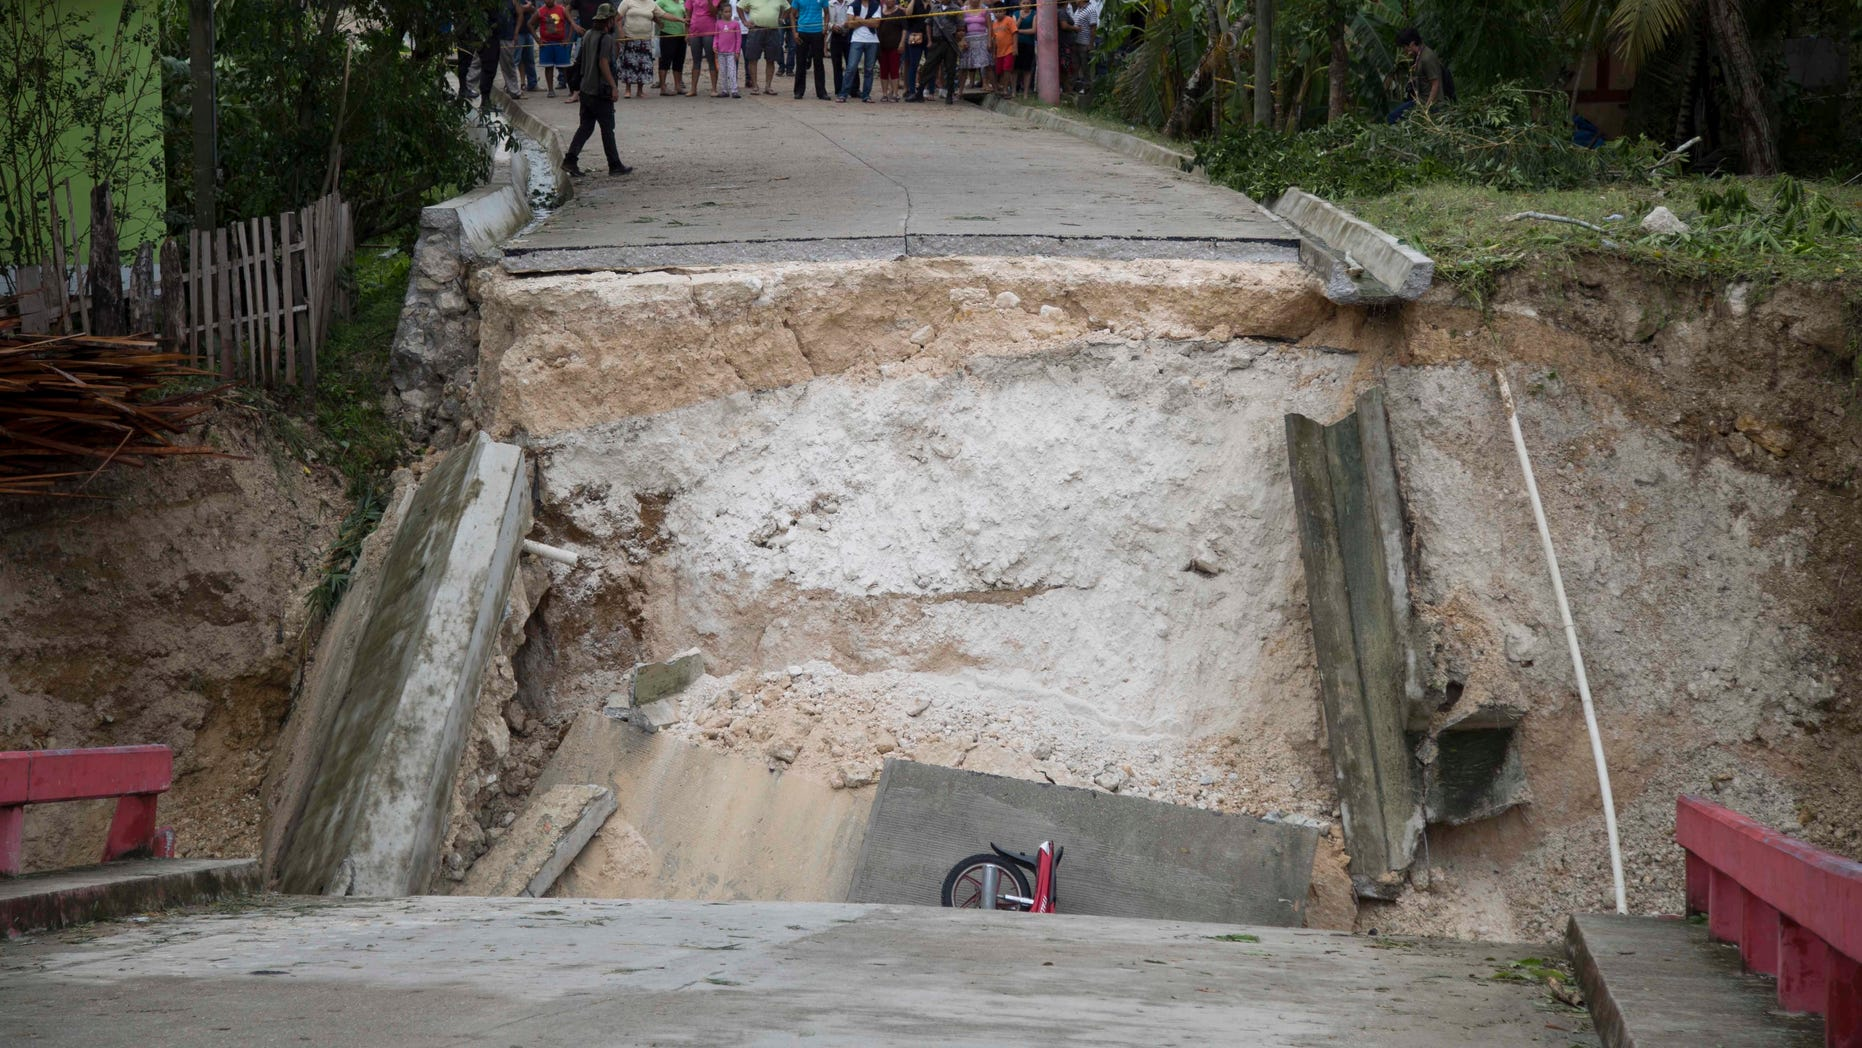 A motorcycle lies in the debris of a collapsed bridge brought down by Hurricane Earl in the Arroyito neighborhood, in Melchor de Mencos, Guatemala on August 4.